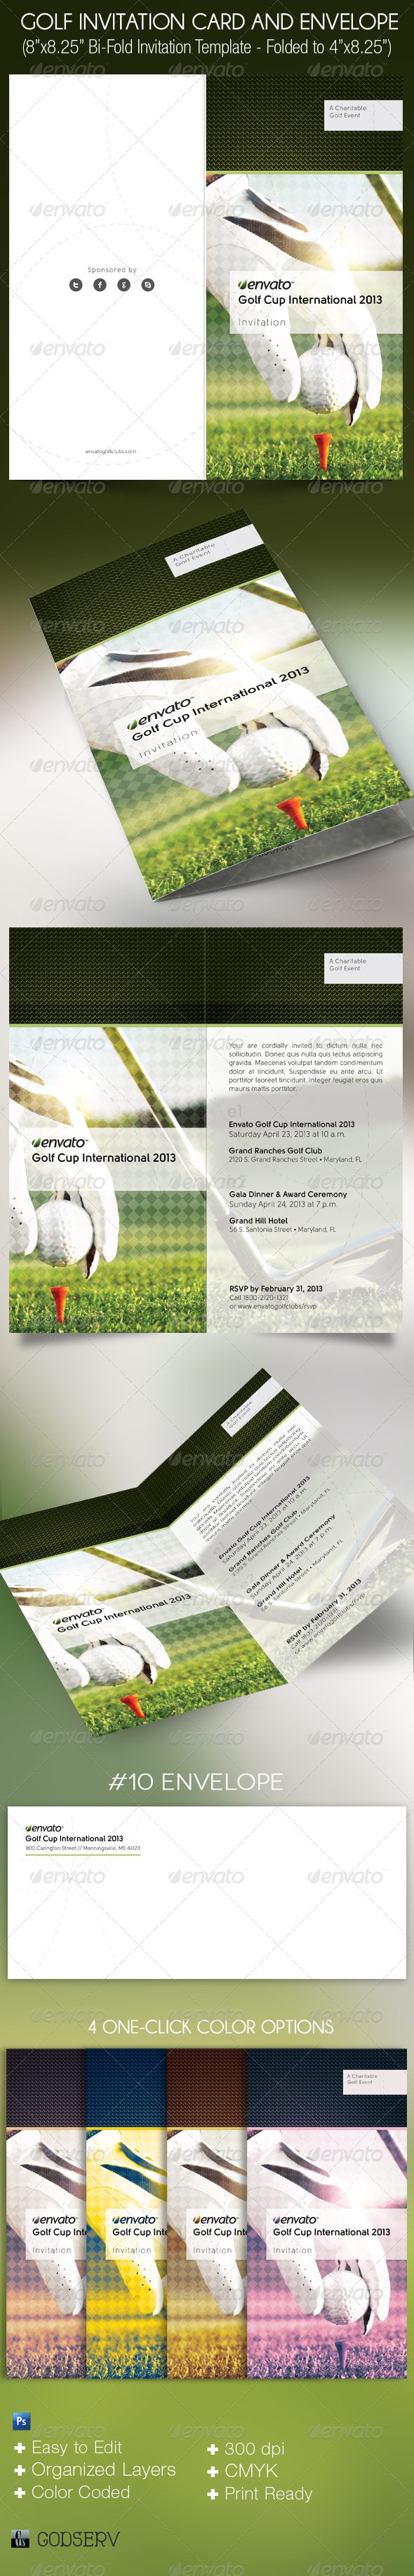 Golf Invitation Card Envelope Template - Invitations Cards & Invites